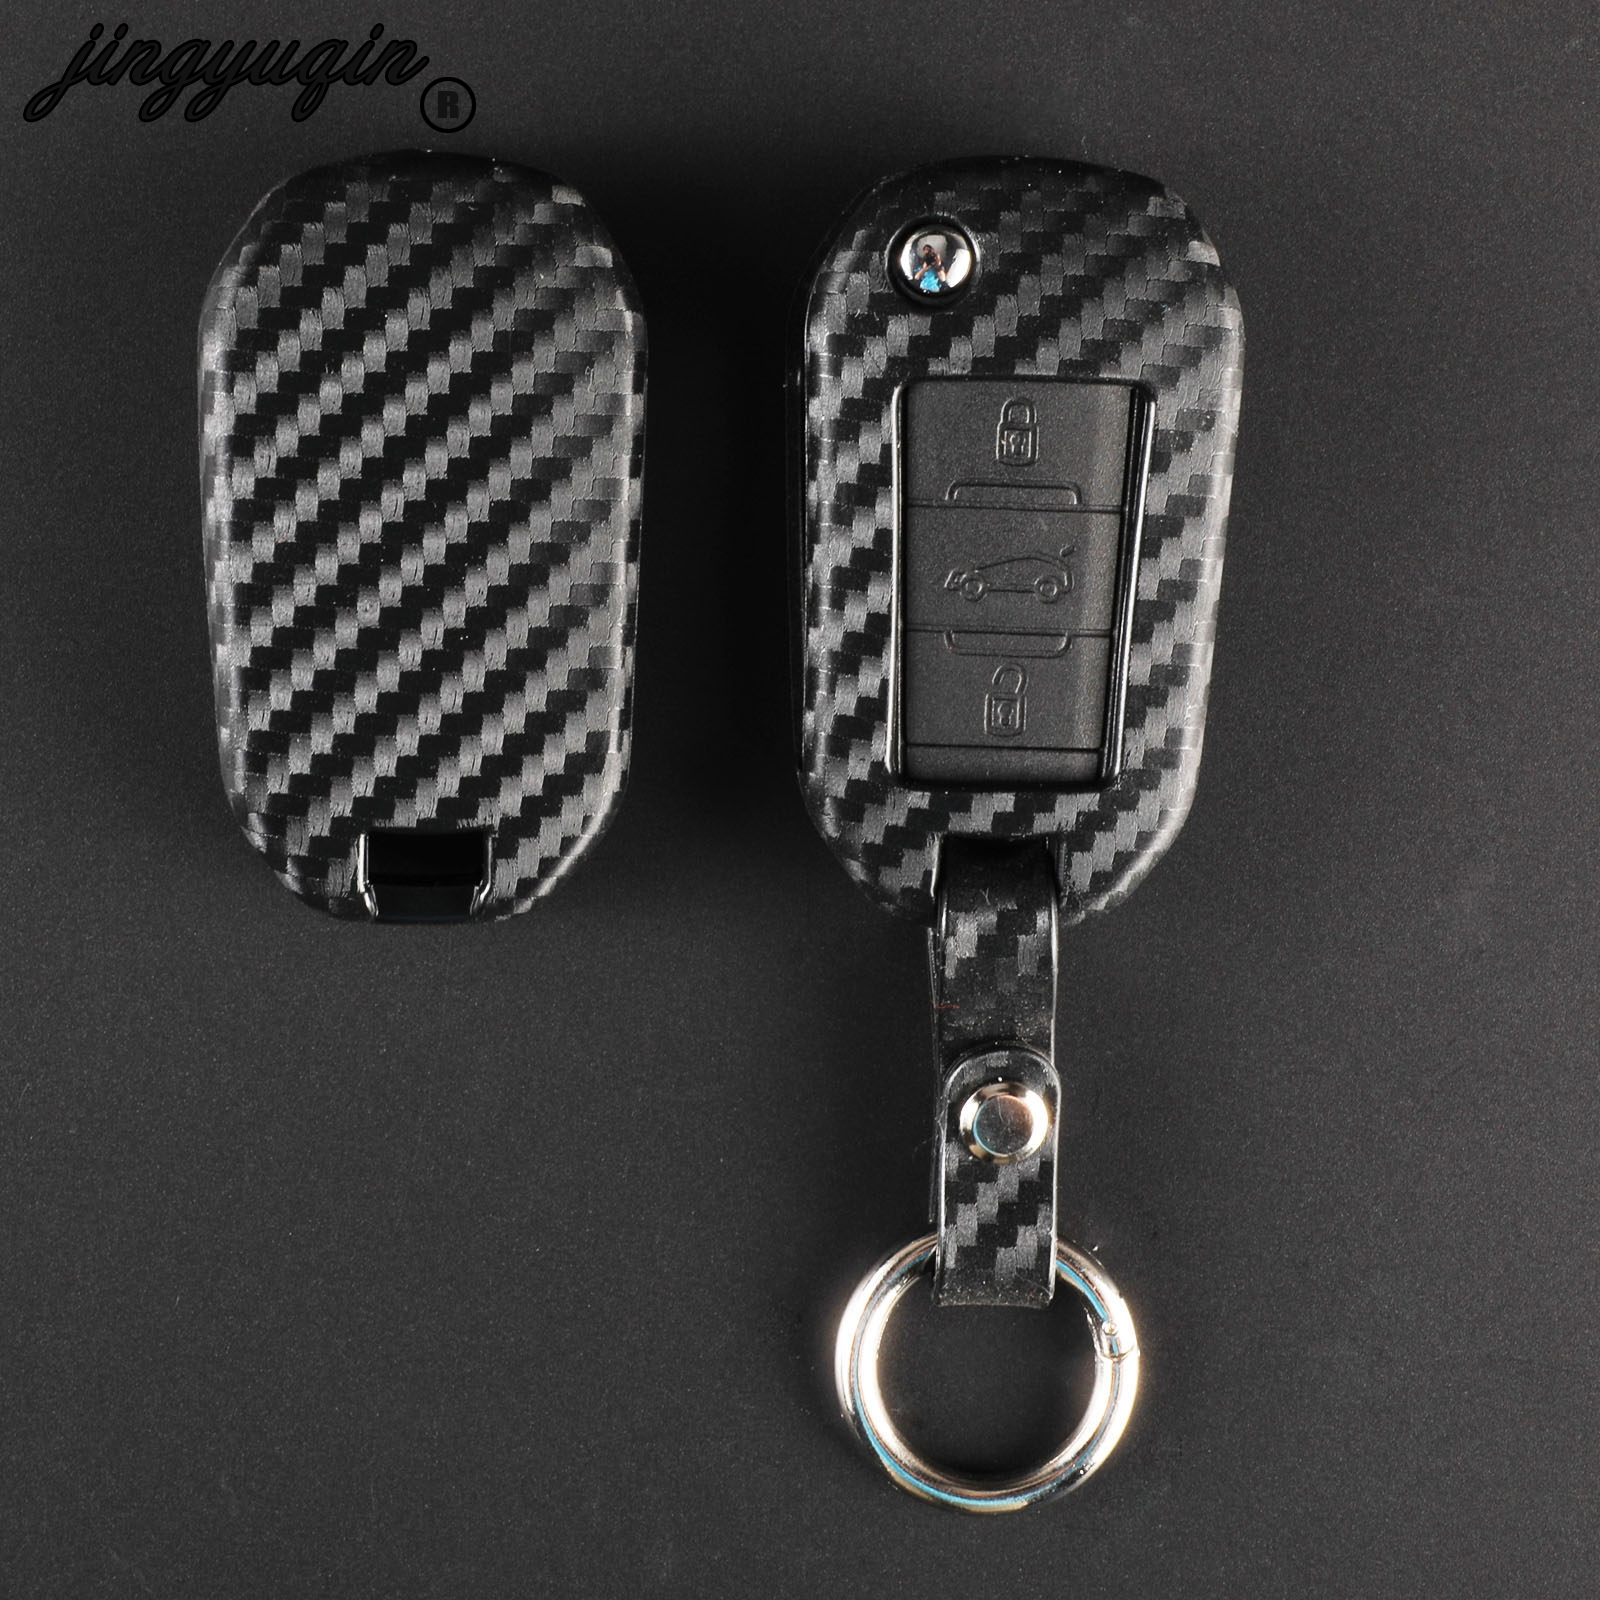 jingyuqin Carbon Silicone fiber Folding <font><b>Remote</b></font> <font><b>Key</b></font> Case Cover for <font><b>Peugeot</b></font> 3008 <font><b>208</b></font> 308 508 408 2008 Citroen C4 CACTUS C5 C3 C4L image